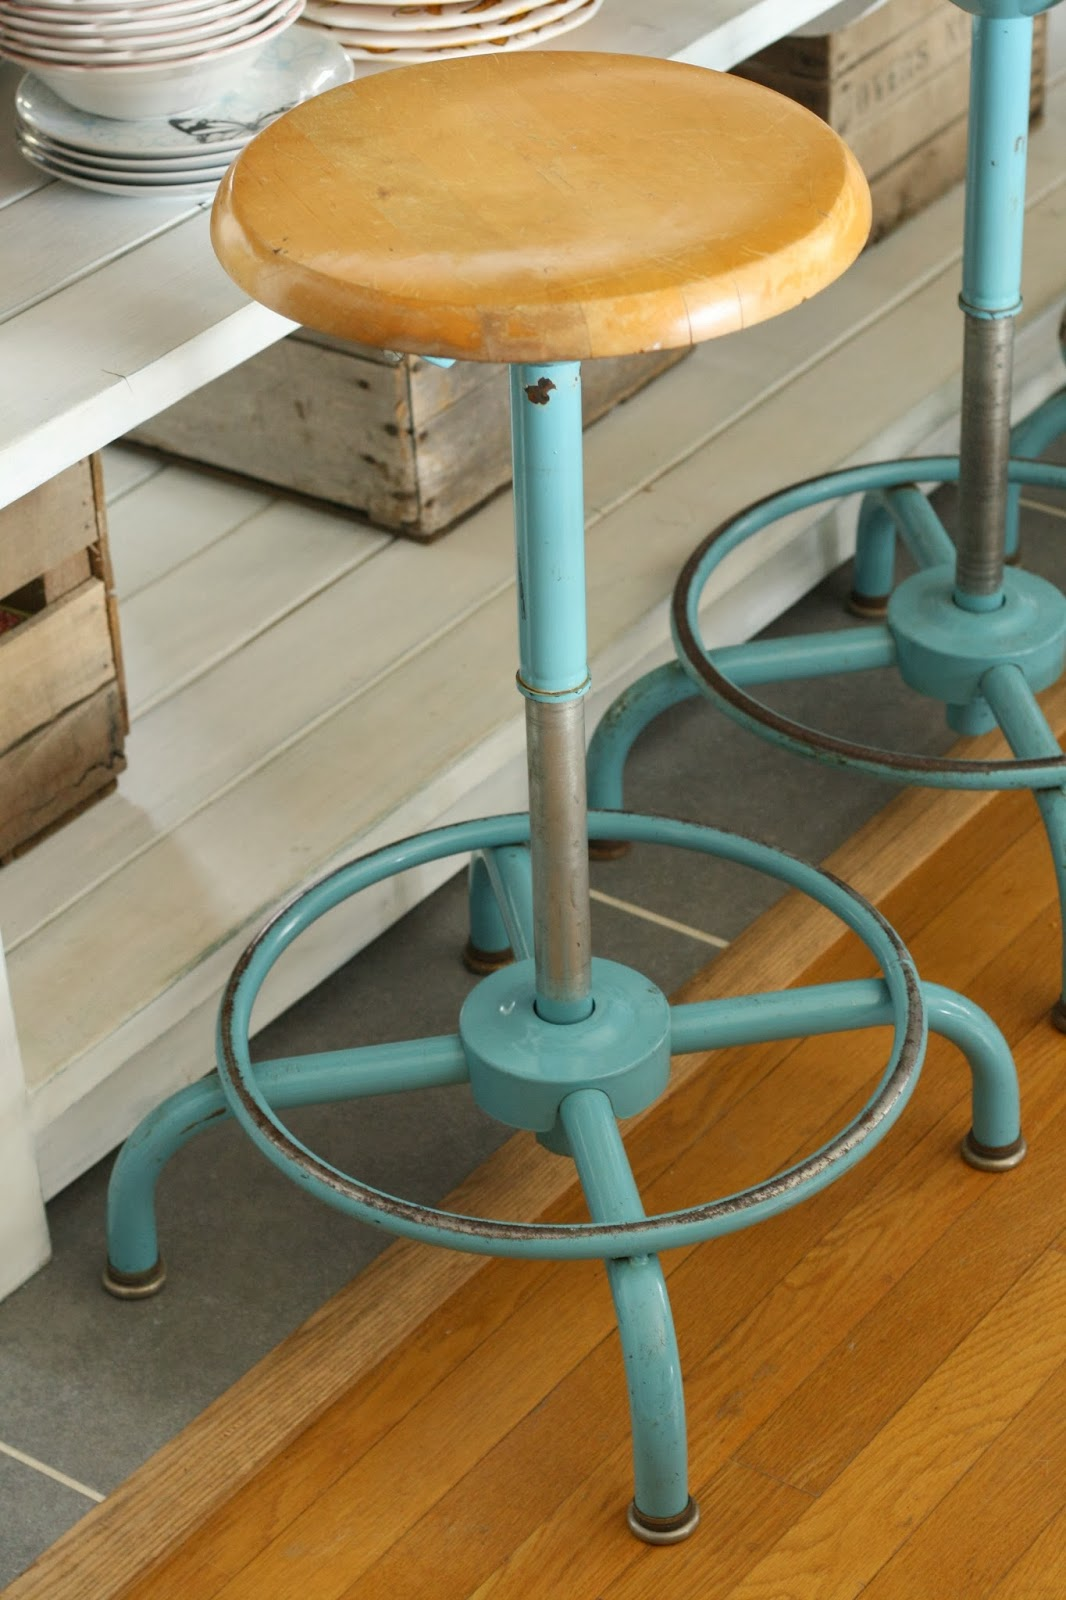 Industrial Chairs Target Jenny Lind Rocking Chair White My Look Kitchen Island And That Time I Messed